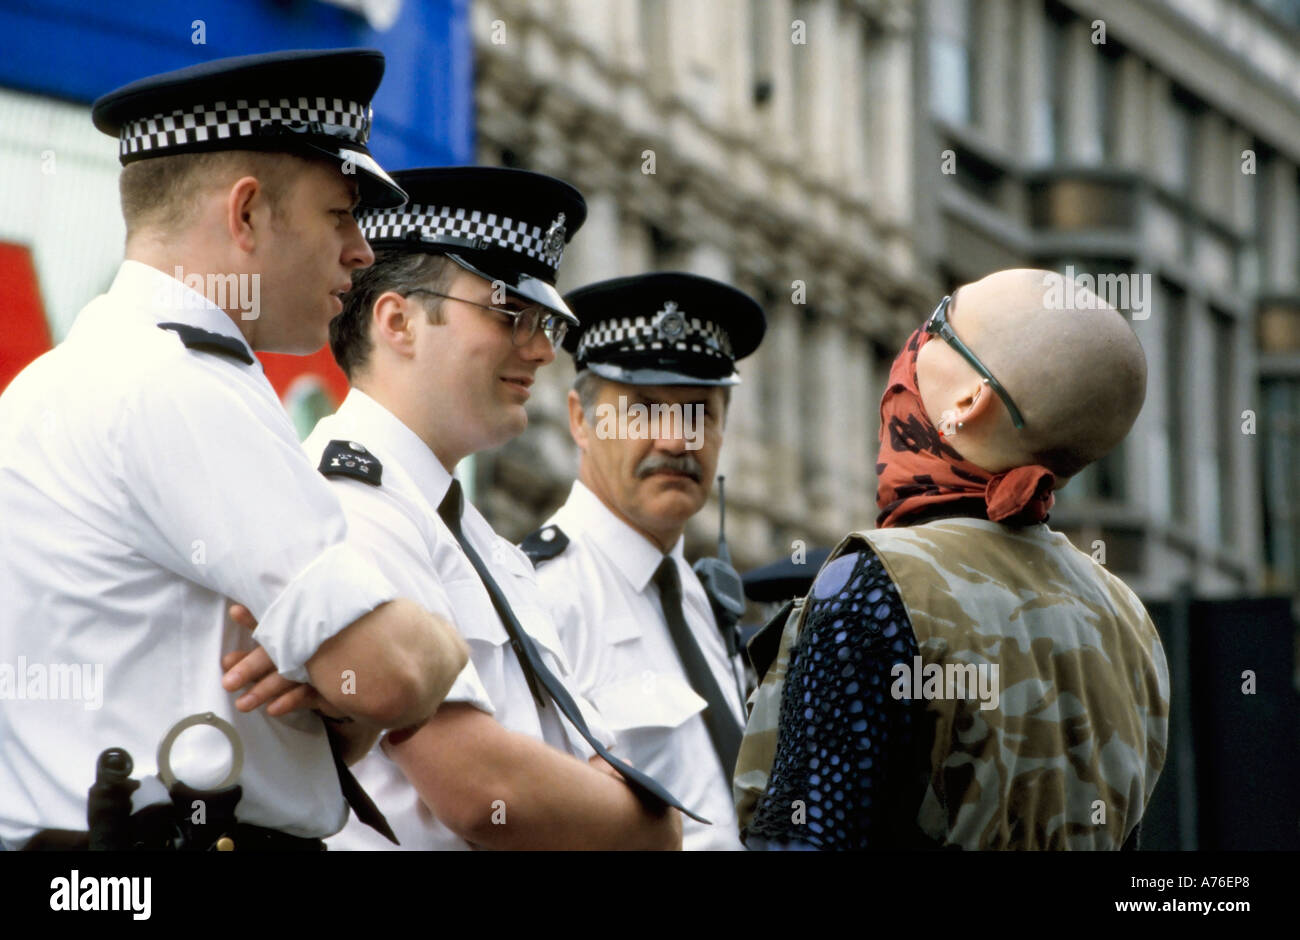 Three policemen talking to a skinhead demonstrator during the May Day demonstrations. - Stock Image